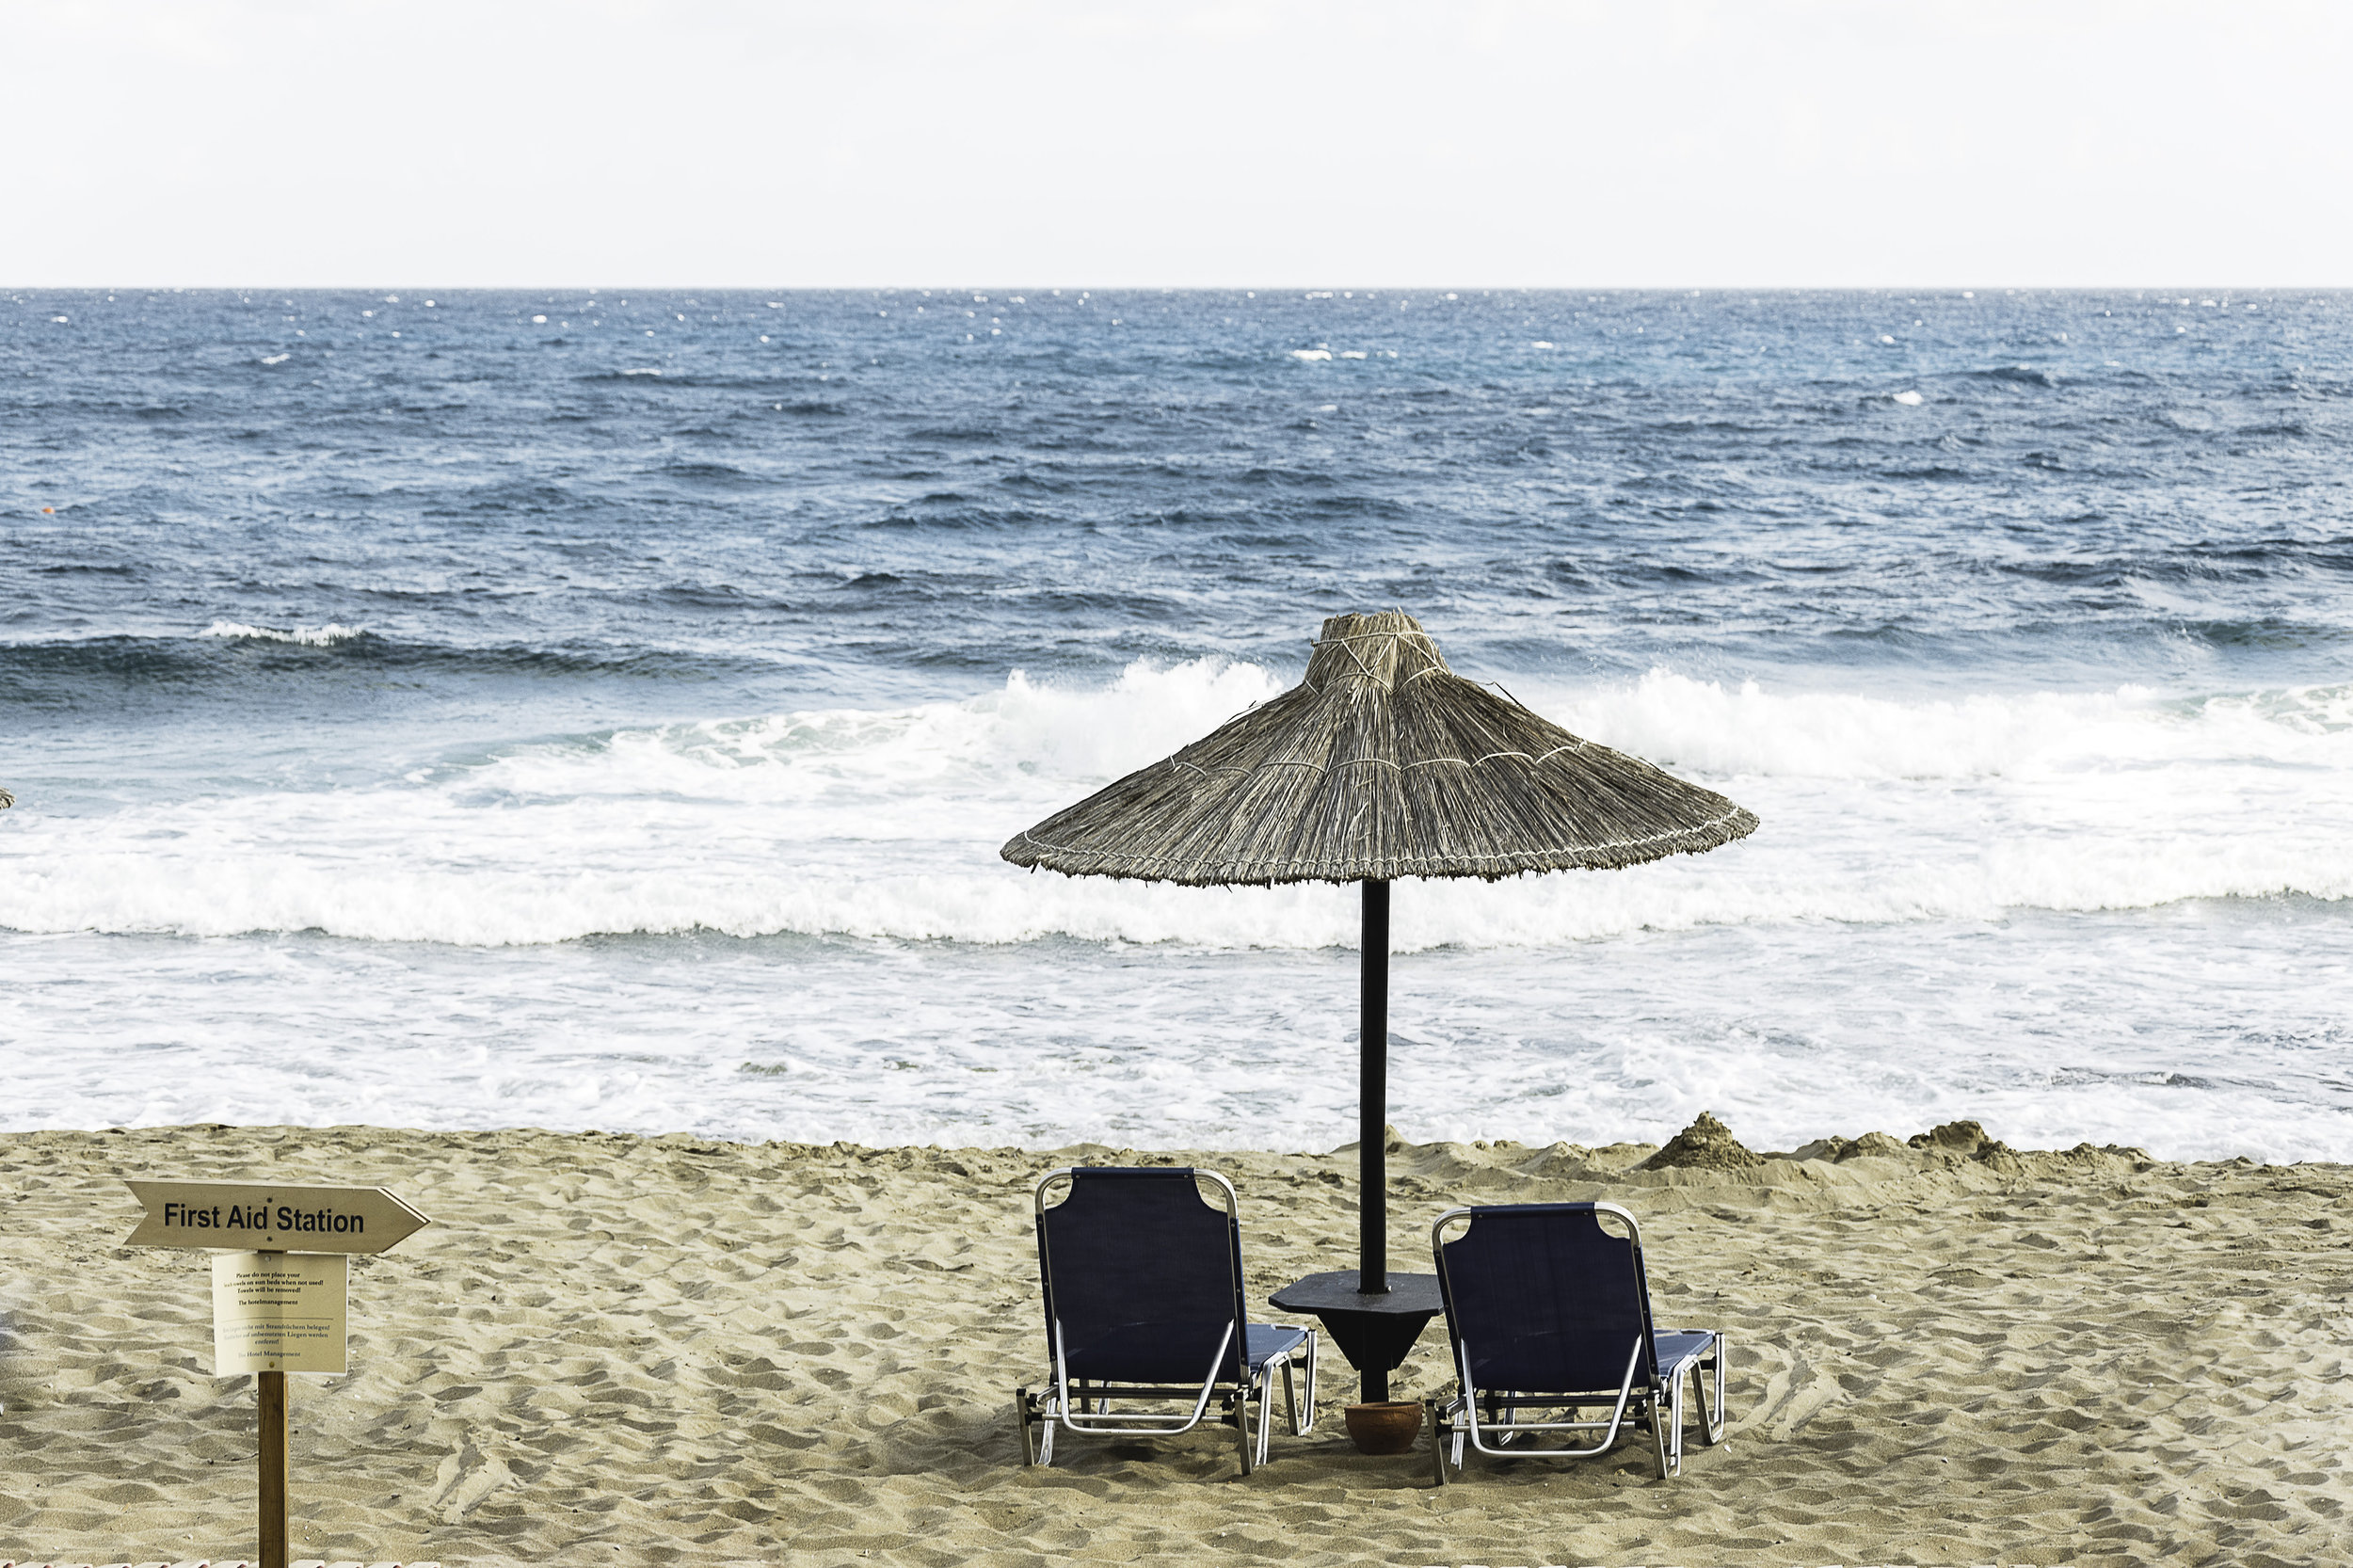 Holiday Hire Services - We have hire companies that offer a large range of quality equipment with free delivery to your holiday home.For all your holiday hire needs: Beach chairs, Luxury Beach Towels, Cots, Highchairs, Beach Umbrella's, Esky's, Boogie Boards, prams, stairguards and bed rails.Please ask us for hire company details.